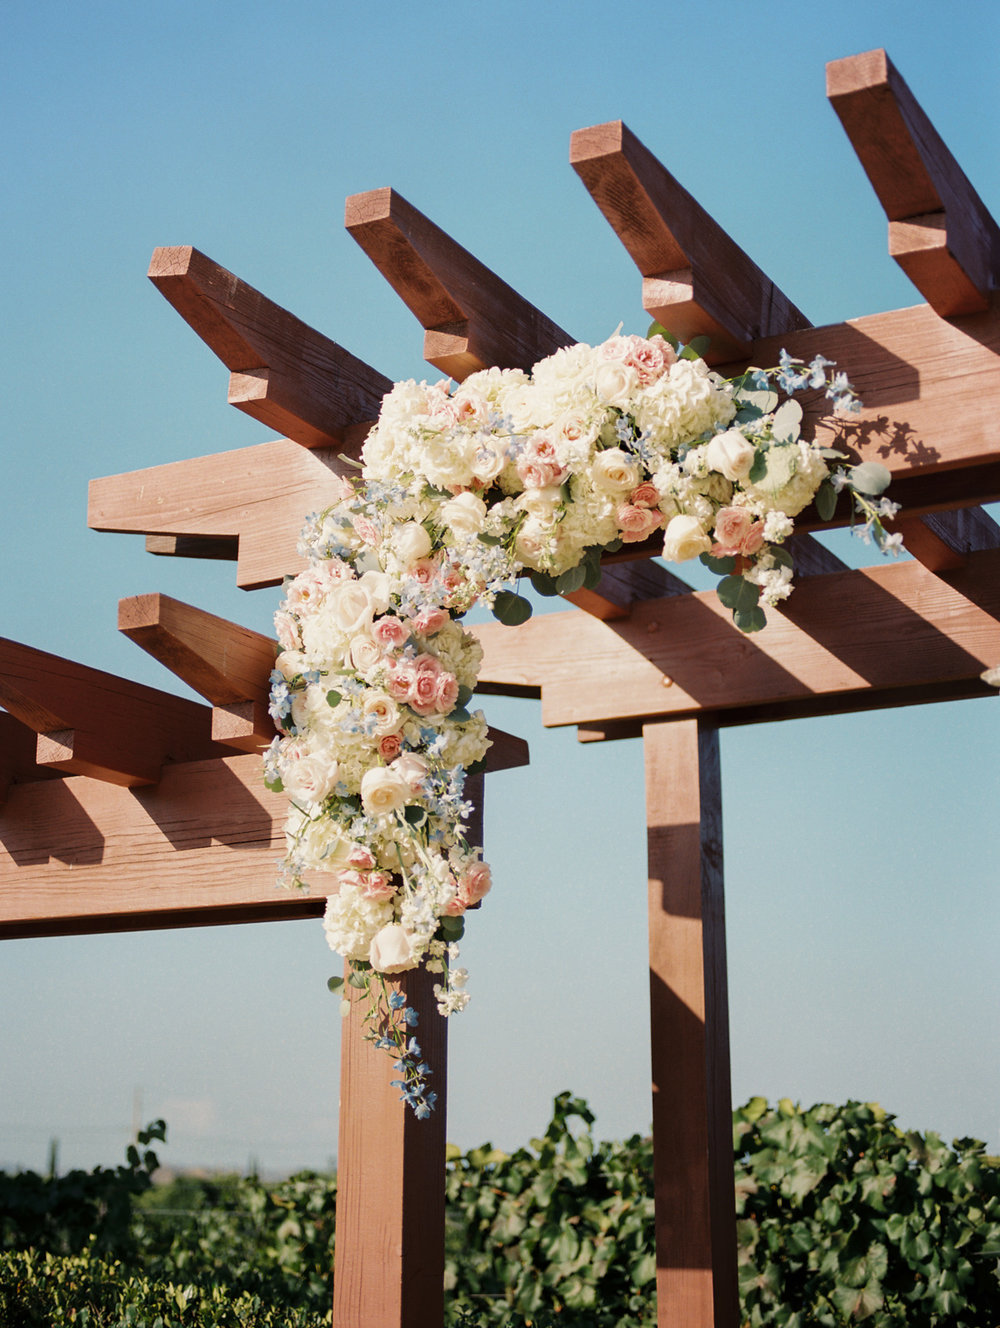 Floral arch by Soiree Design & Events |  Harrison & Jocelyne's gorgeous Temecula wedding at Wiens Family Cellars captured by Betsy & John | Temecula Wedding Photographers